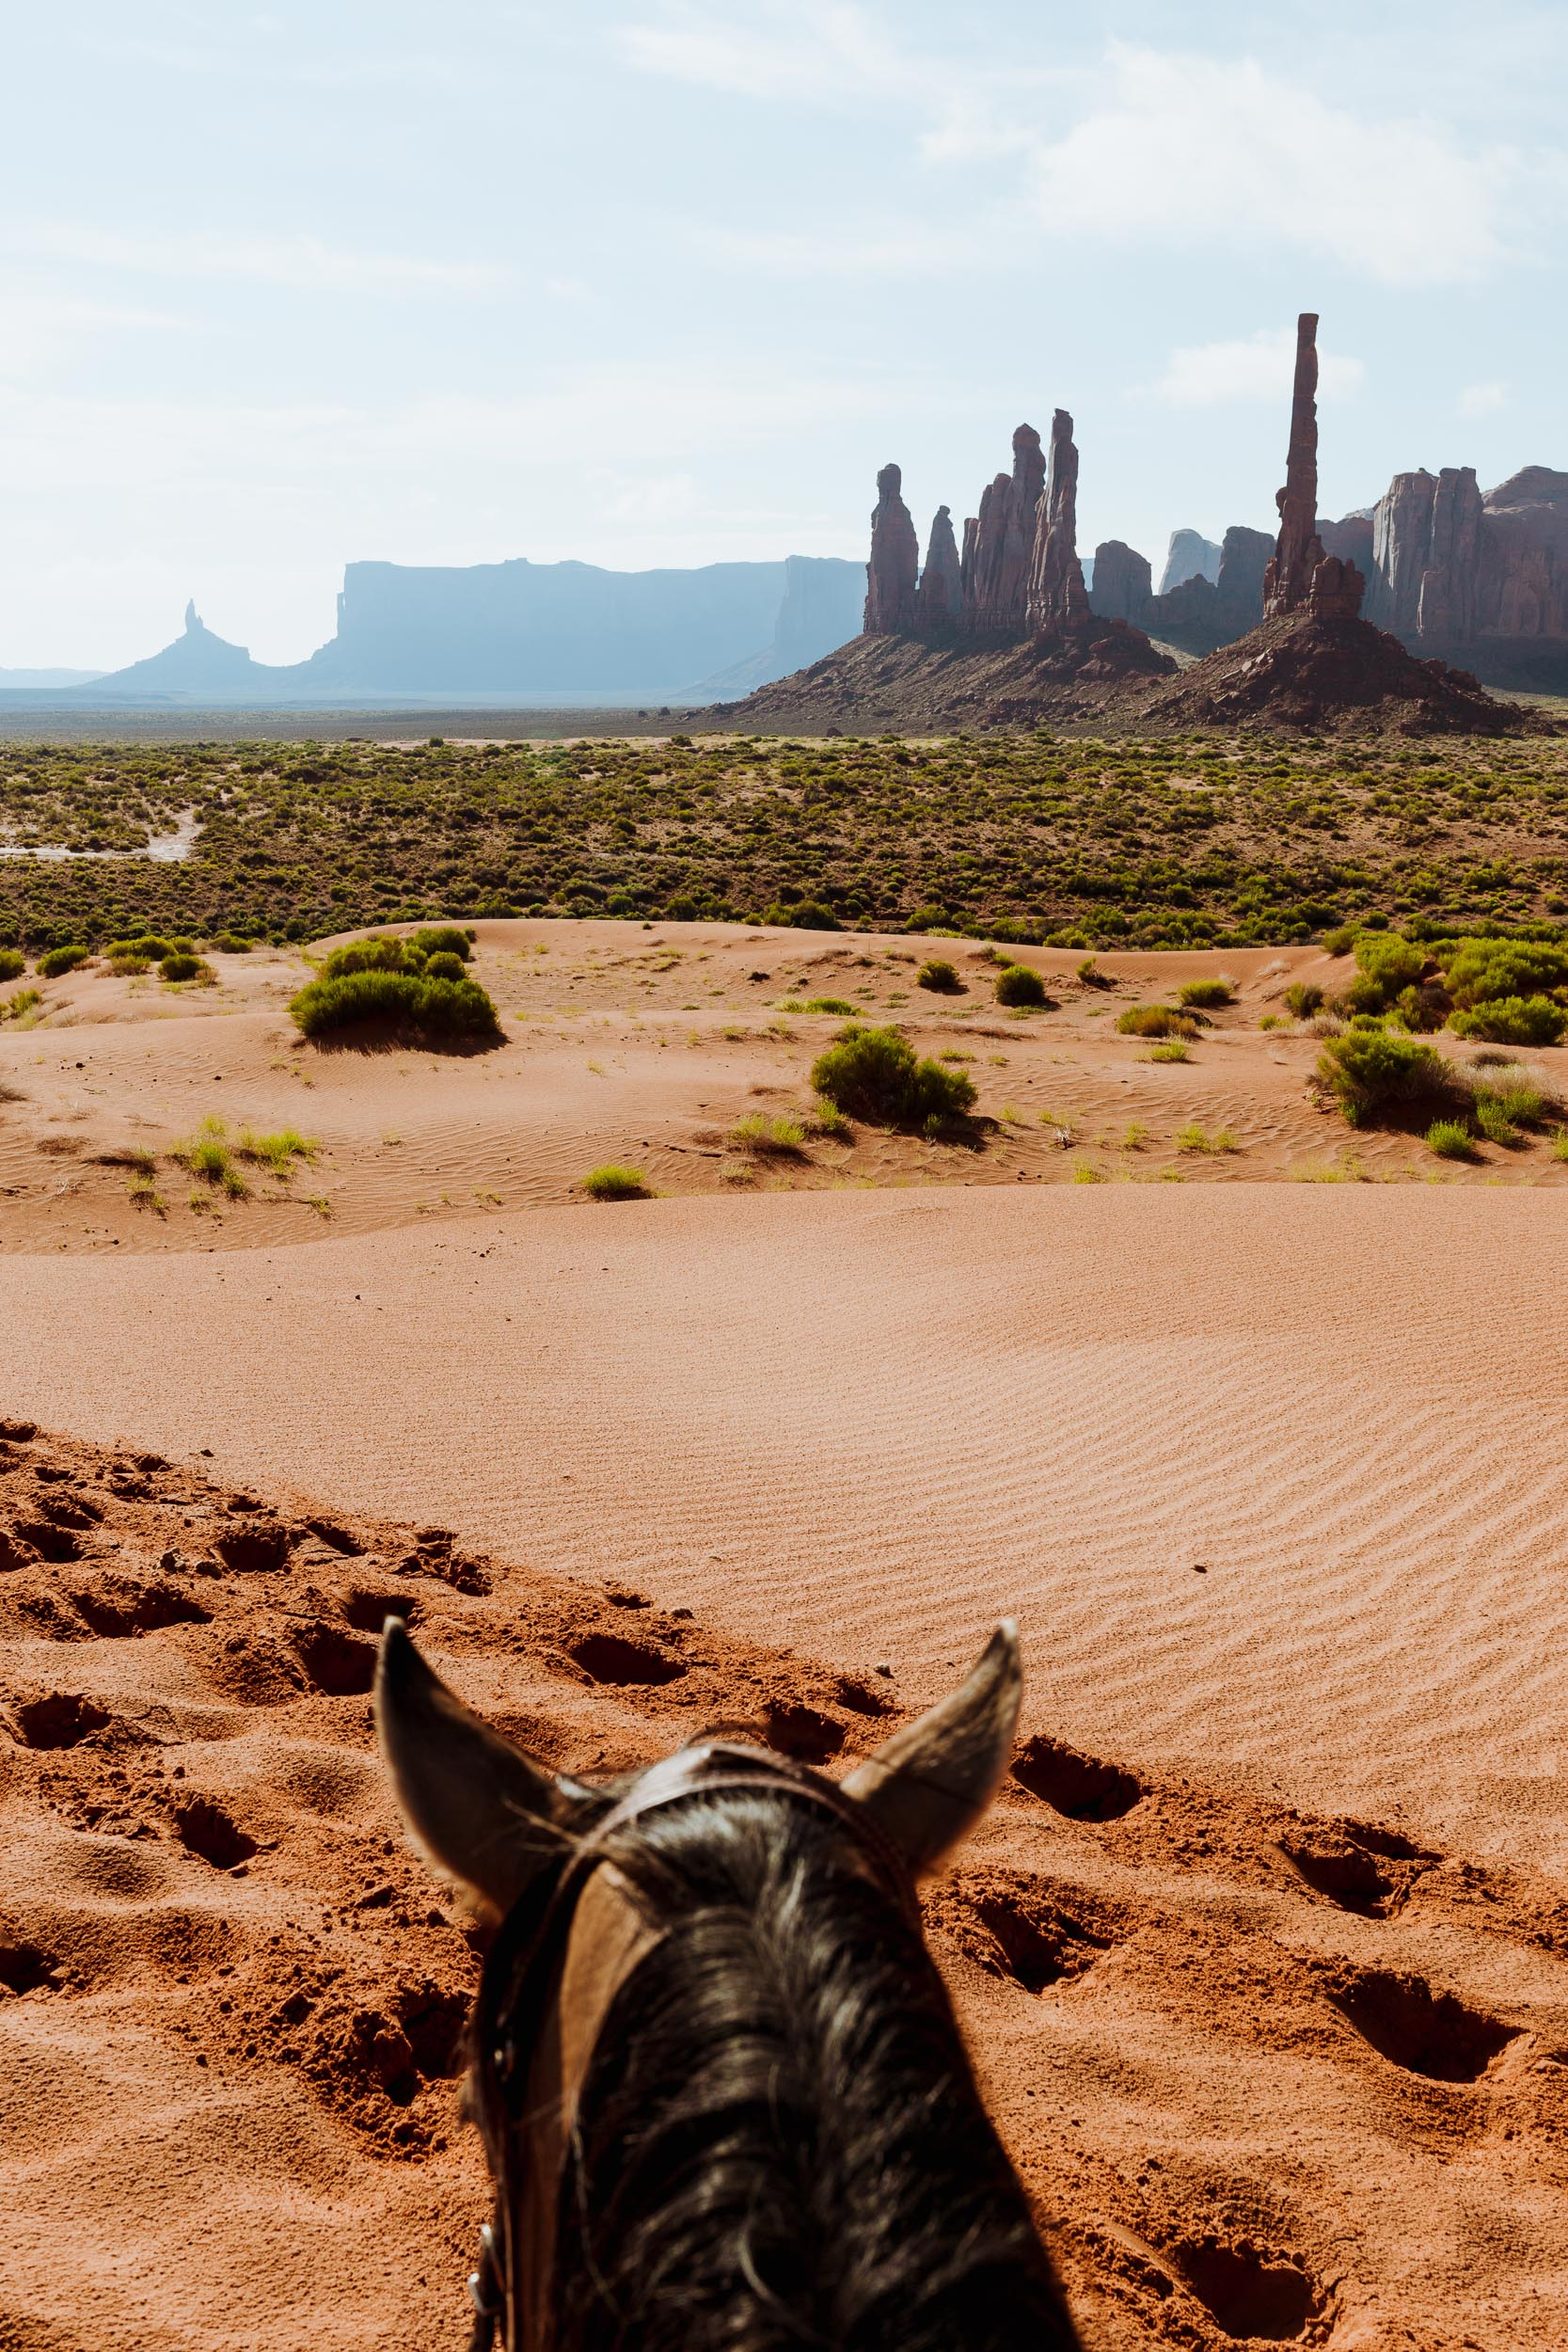 20160825_20160826_MONUMENT_VALLEY-39.jpg